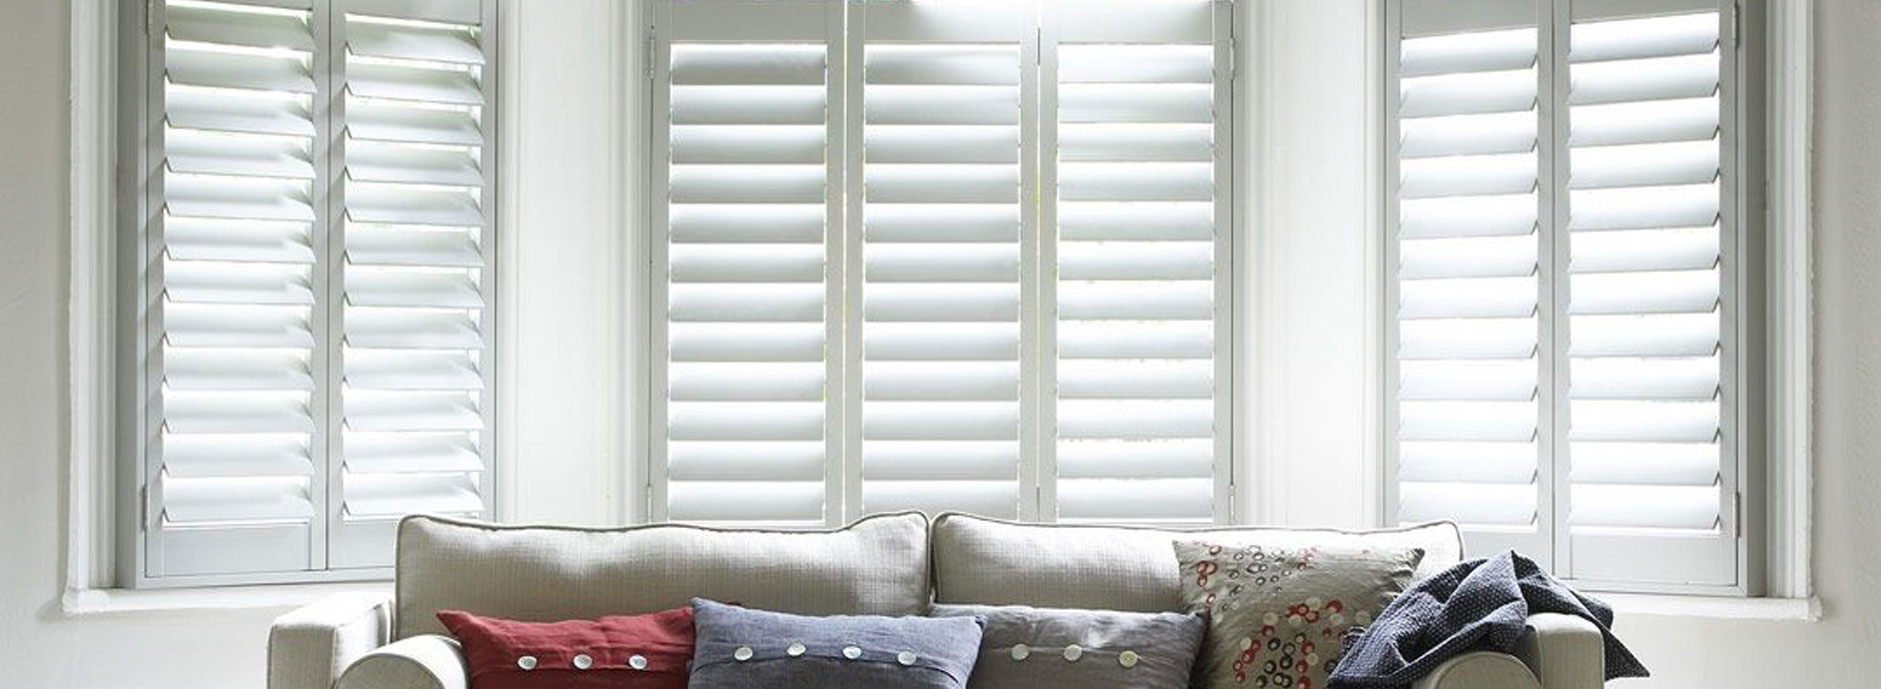 Shutters - Curtains by Design